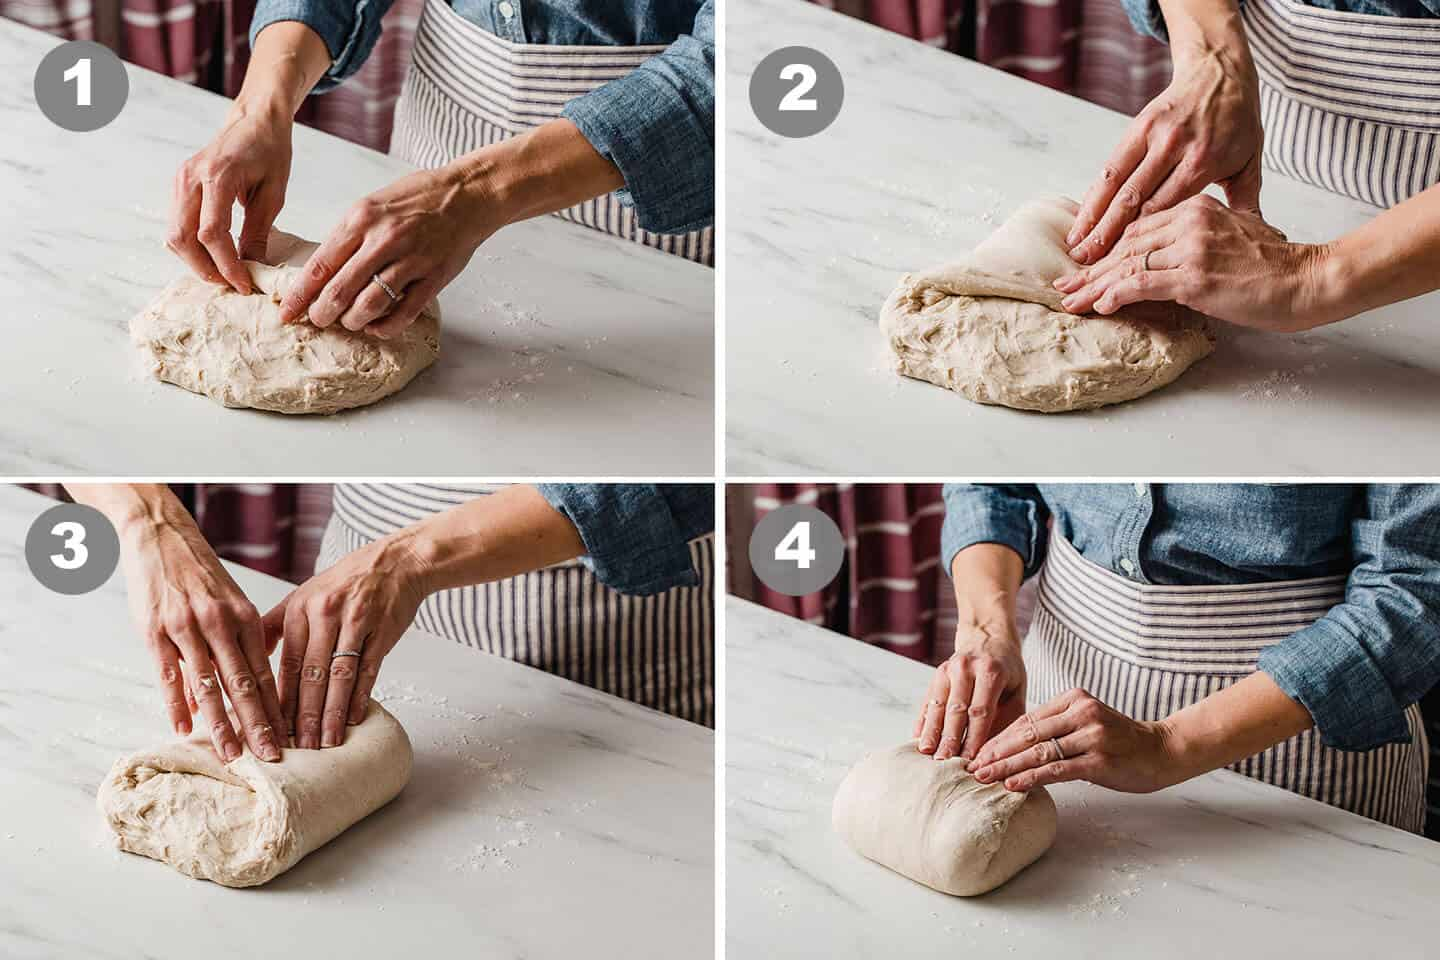 A woman performing a final shape of sourdough country loaf dough.